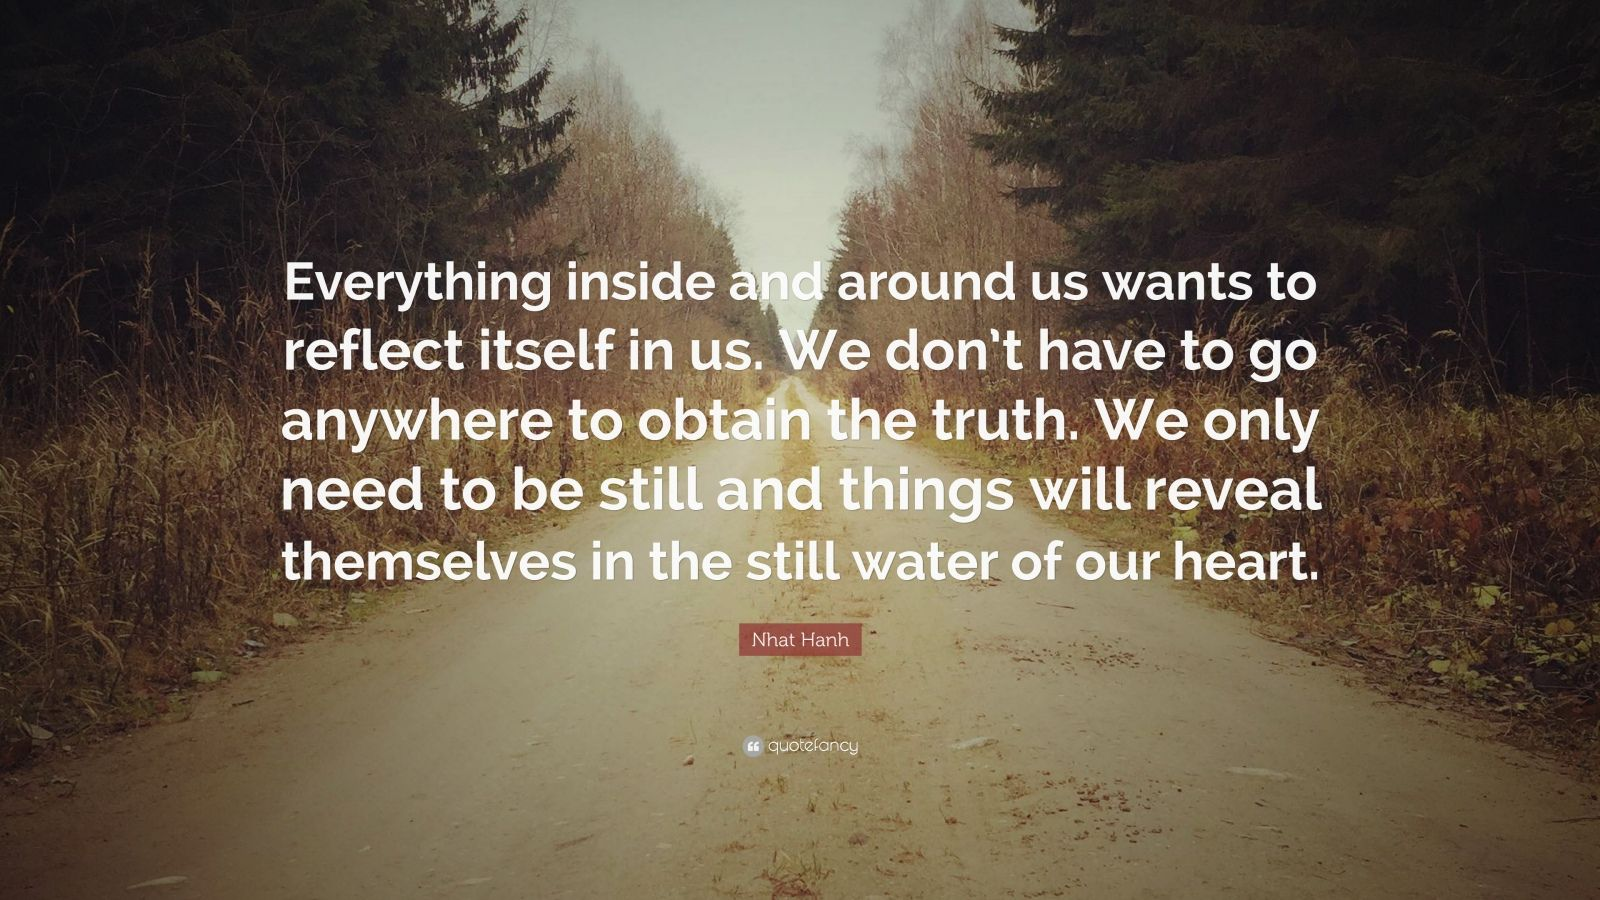 """Nhat Hanh Quote: """"Everything inside and around us wants to reflect itself in us. We don't have to go anywhere to obtain the truth. We only need to be still and things will reveal themselves in the still water of our heart."""""""